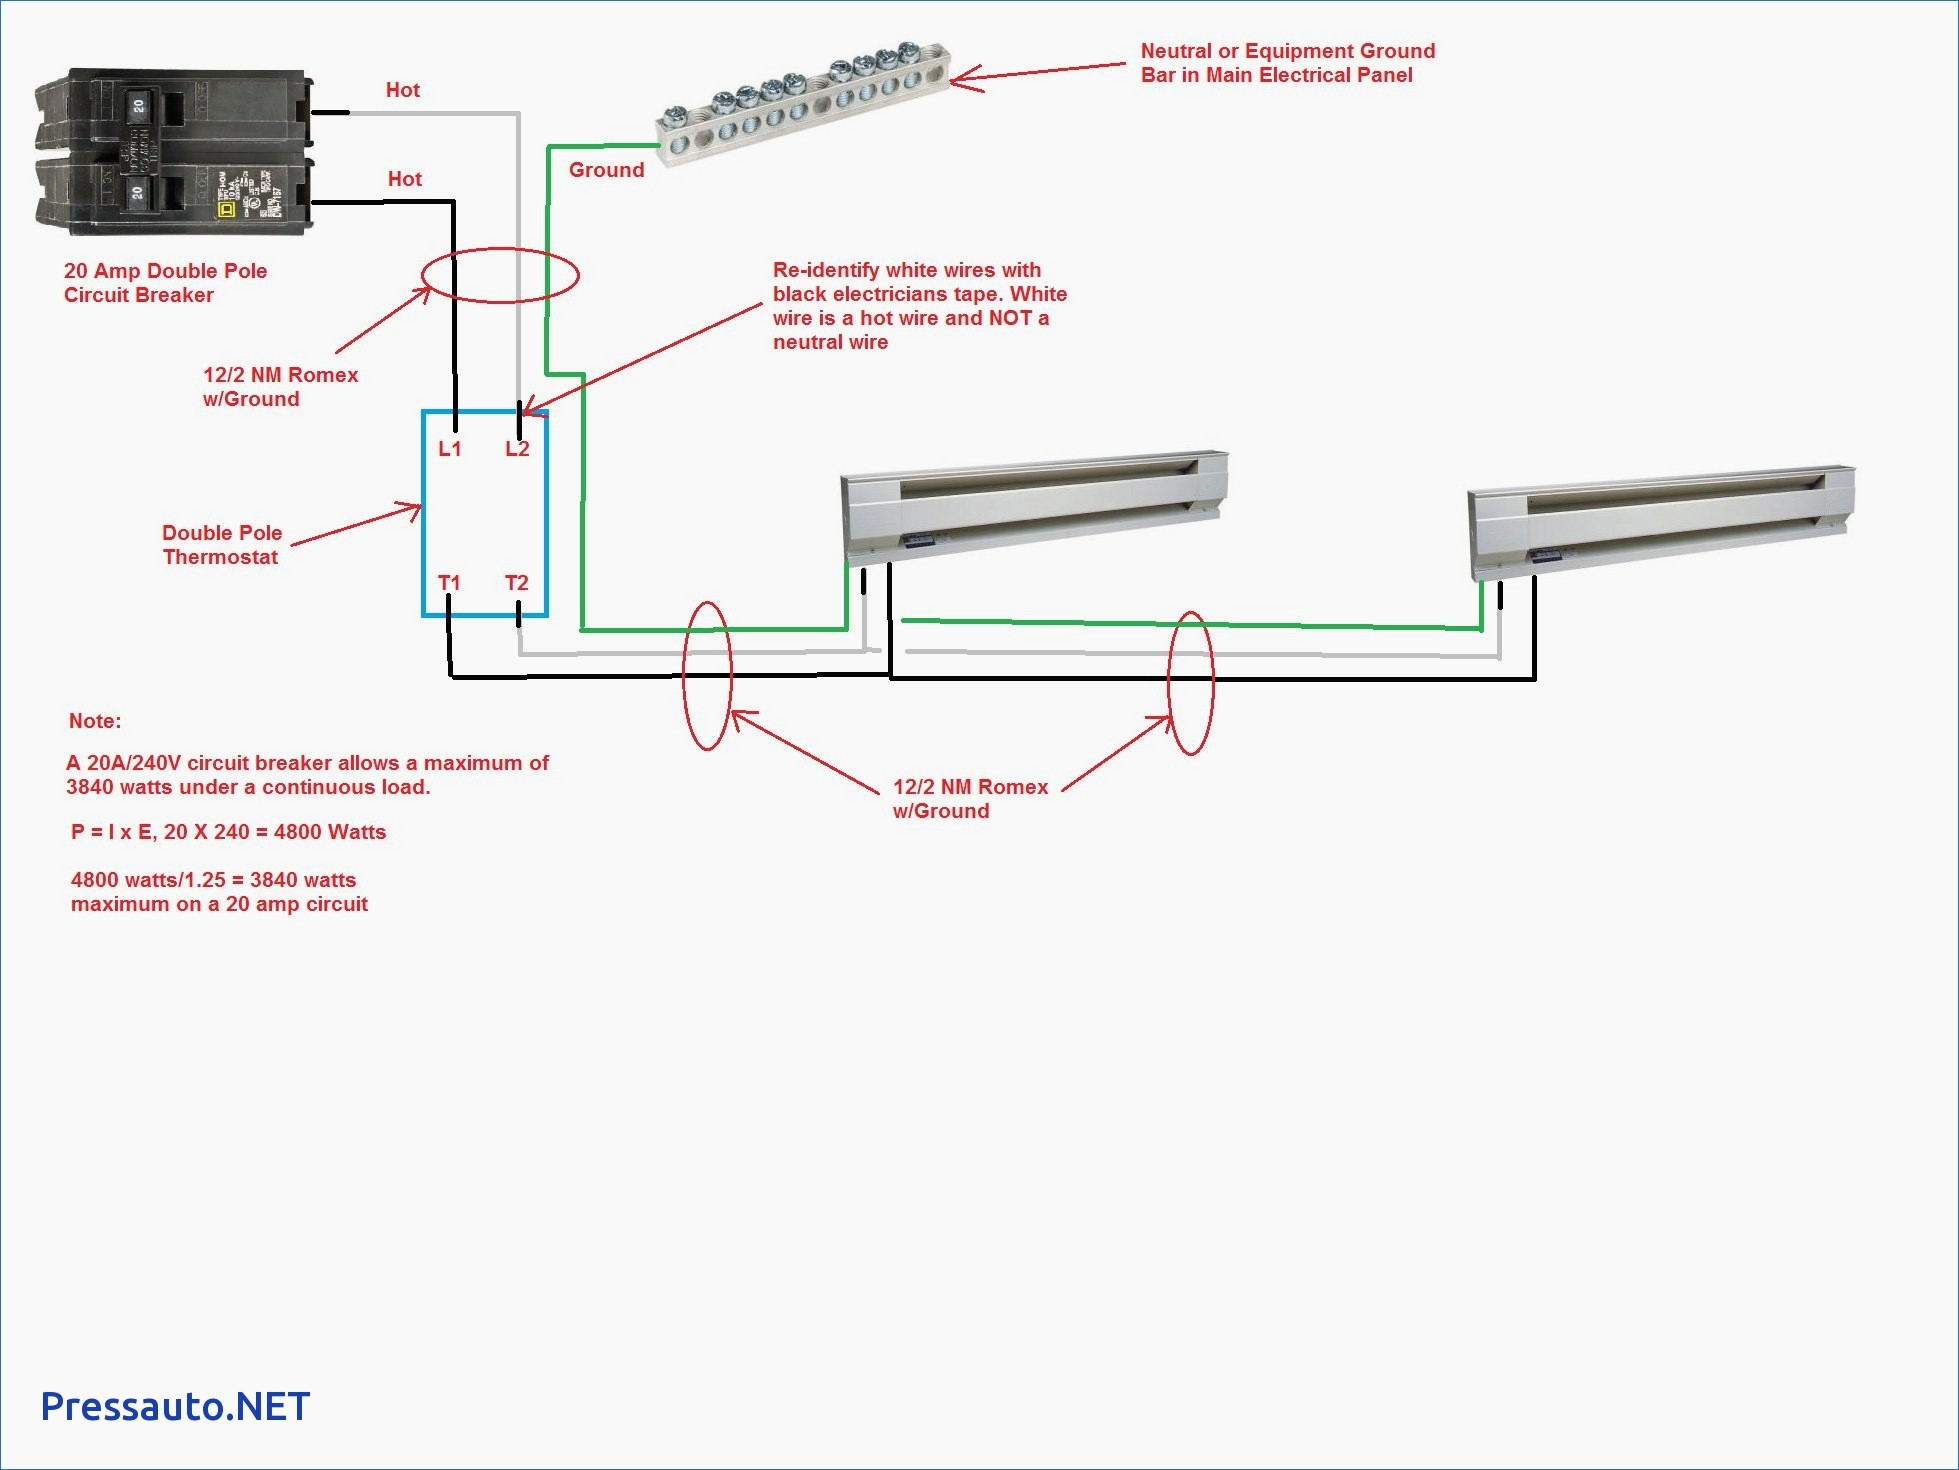 baseboard heater thermostat wiring diagram Download-Dayton Heater Wiring Diagram For B2network 15-t